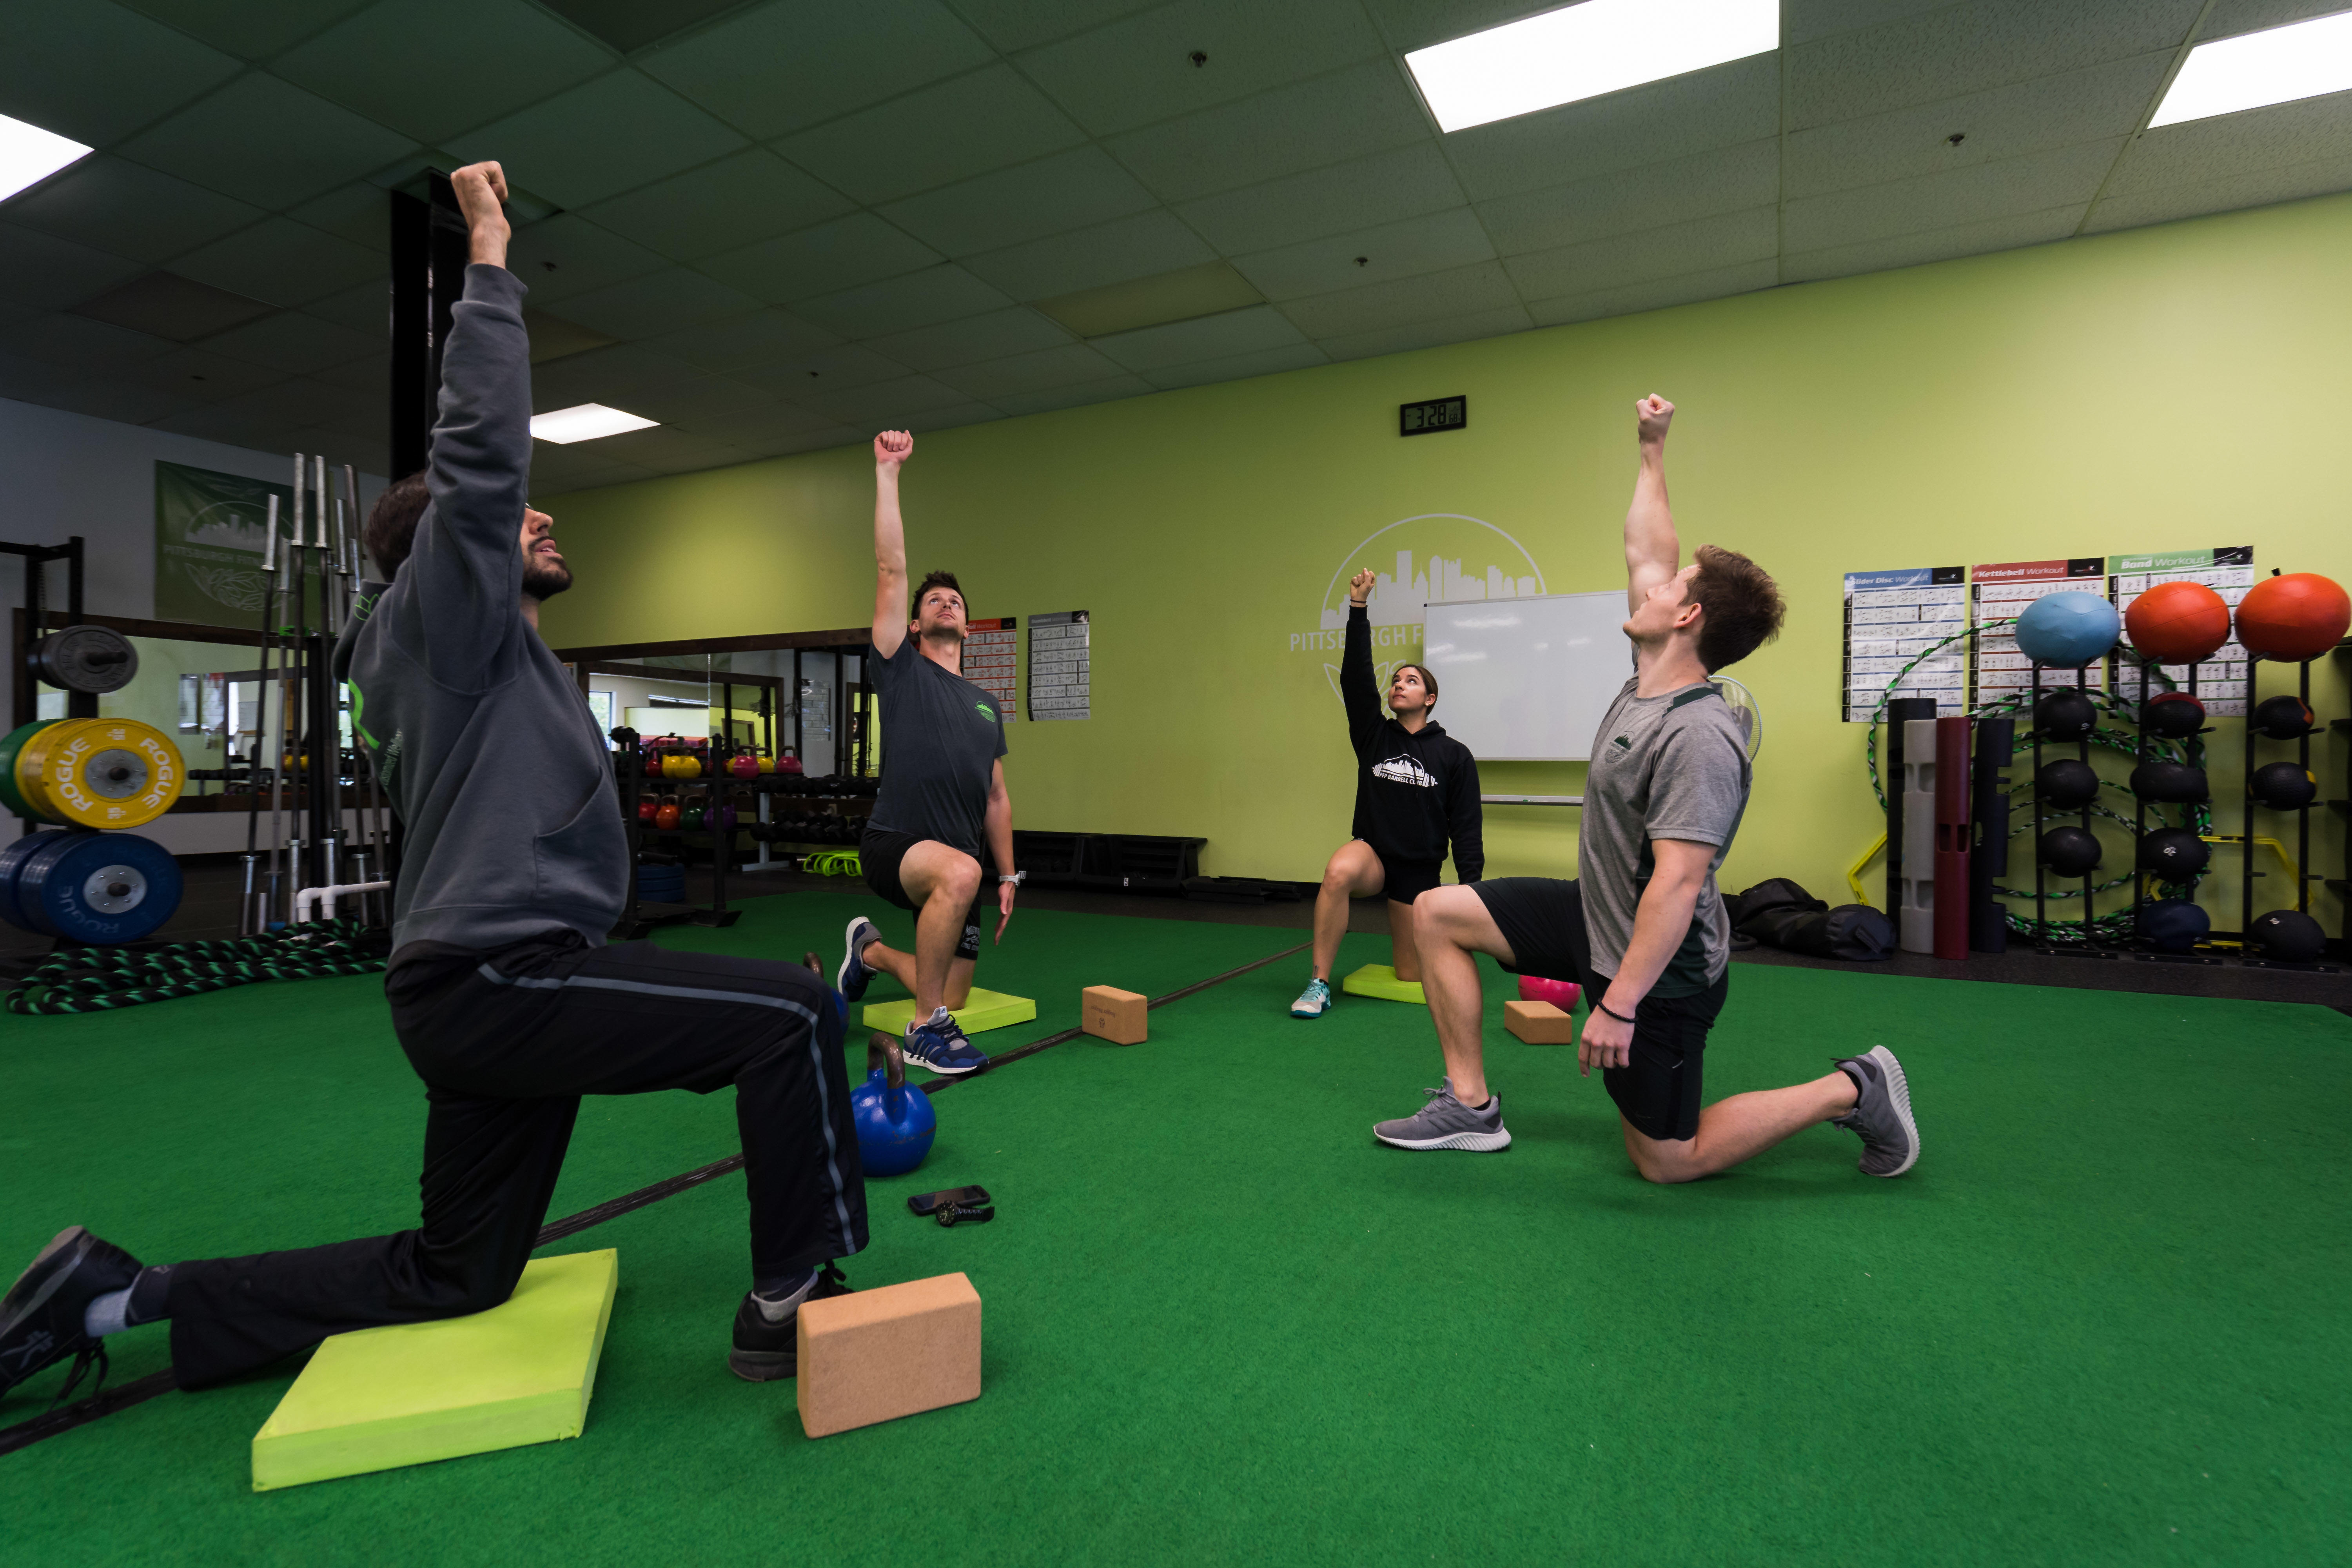 Pittsburgh Fitness Project image 8